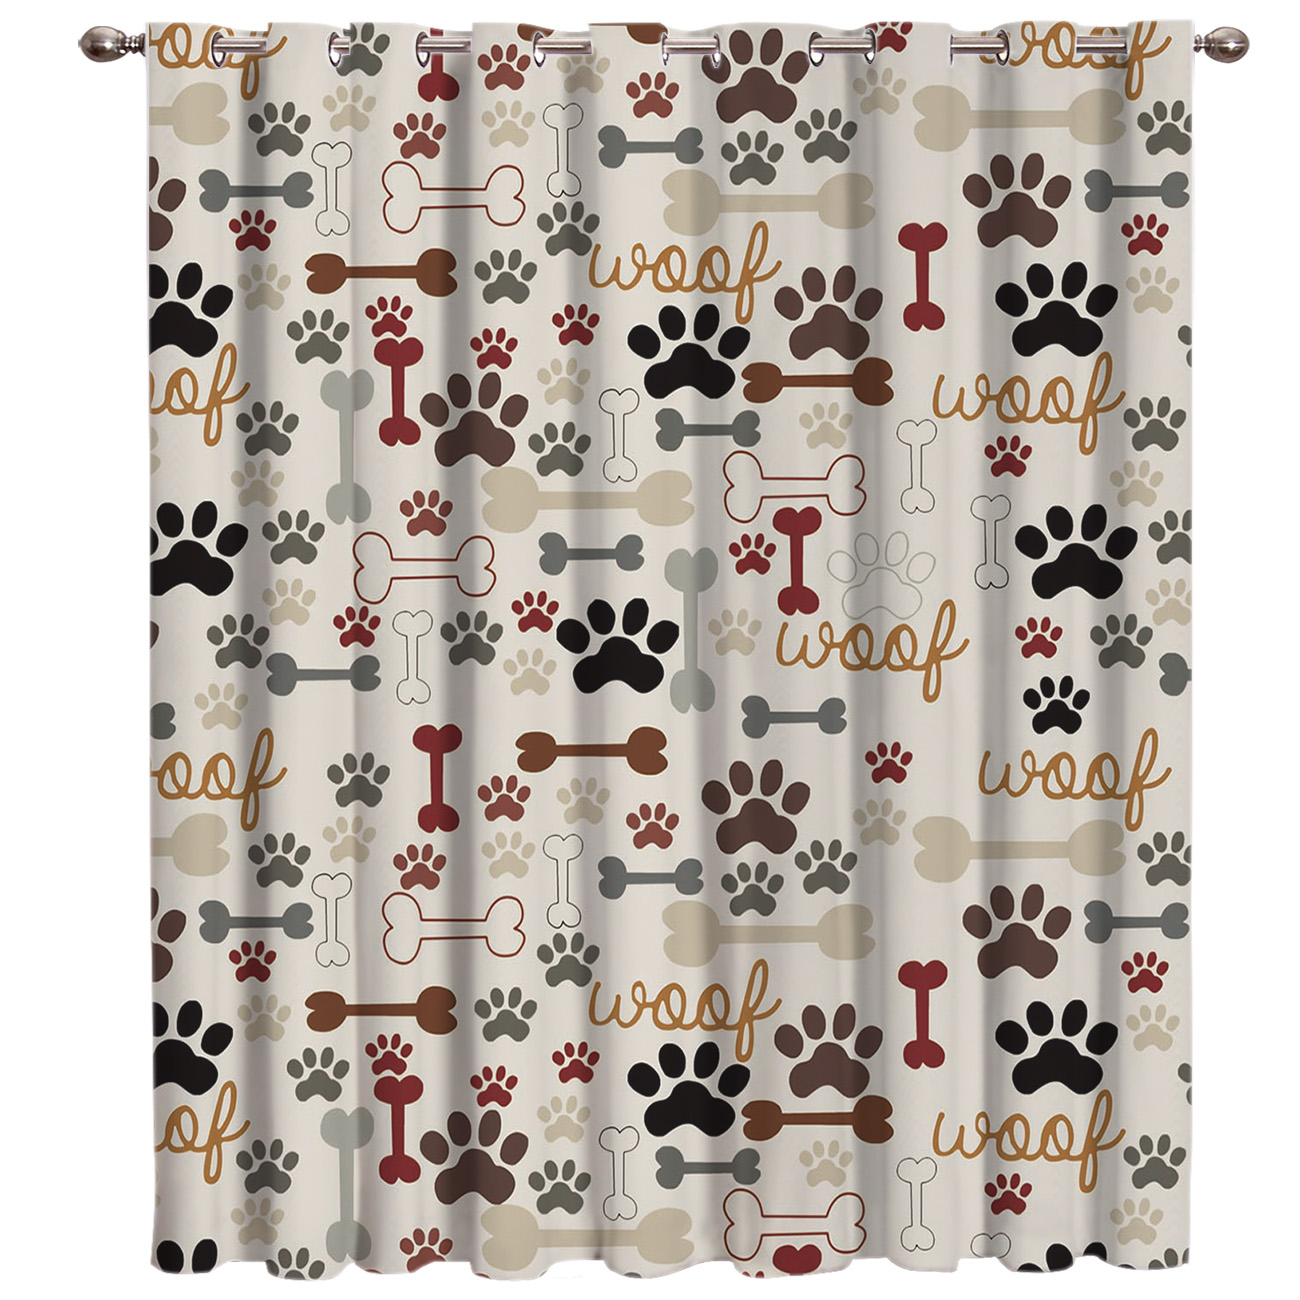 Cartoon Dog Footprints Bones Animals Window Treatments Curtains Valance Living Room Decor Bathroom Kitchen Bedroom Outdoor